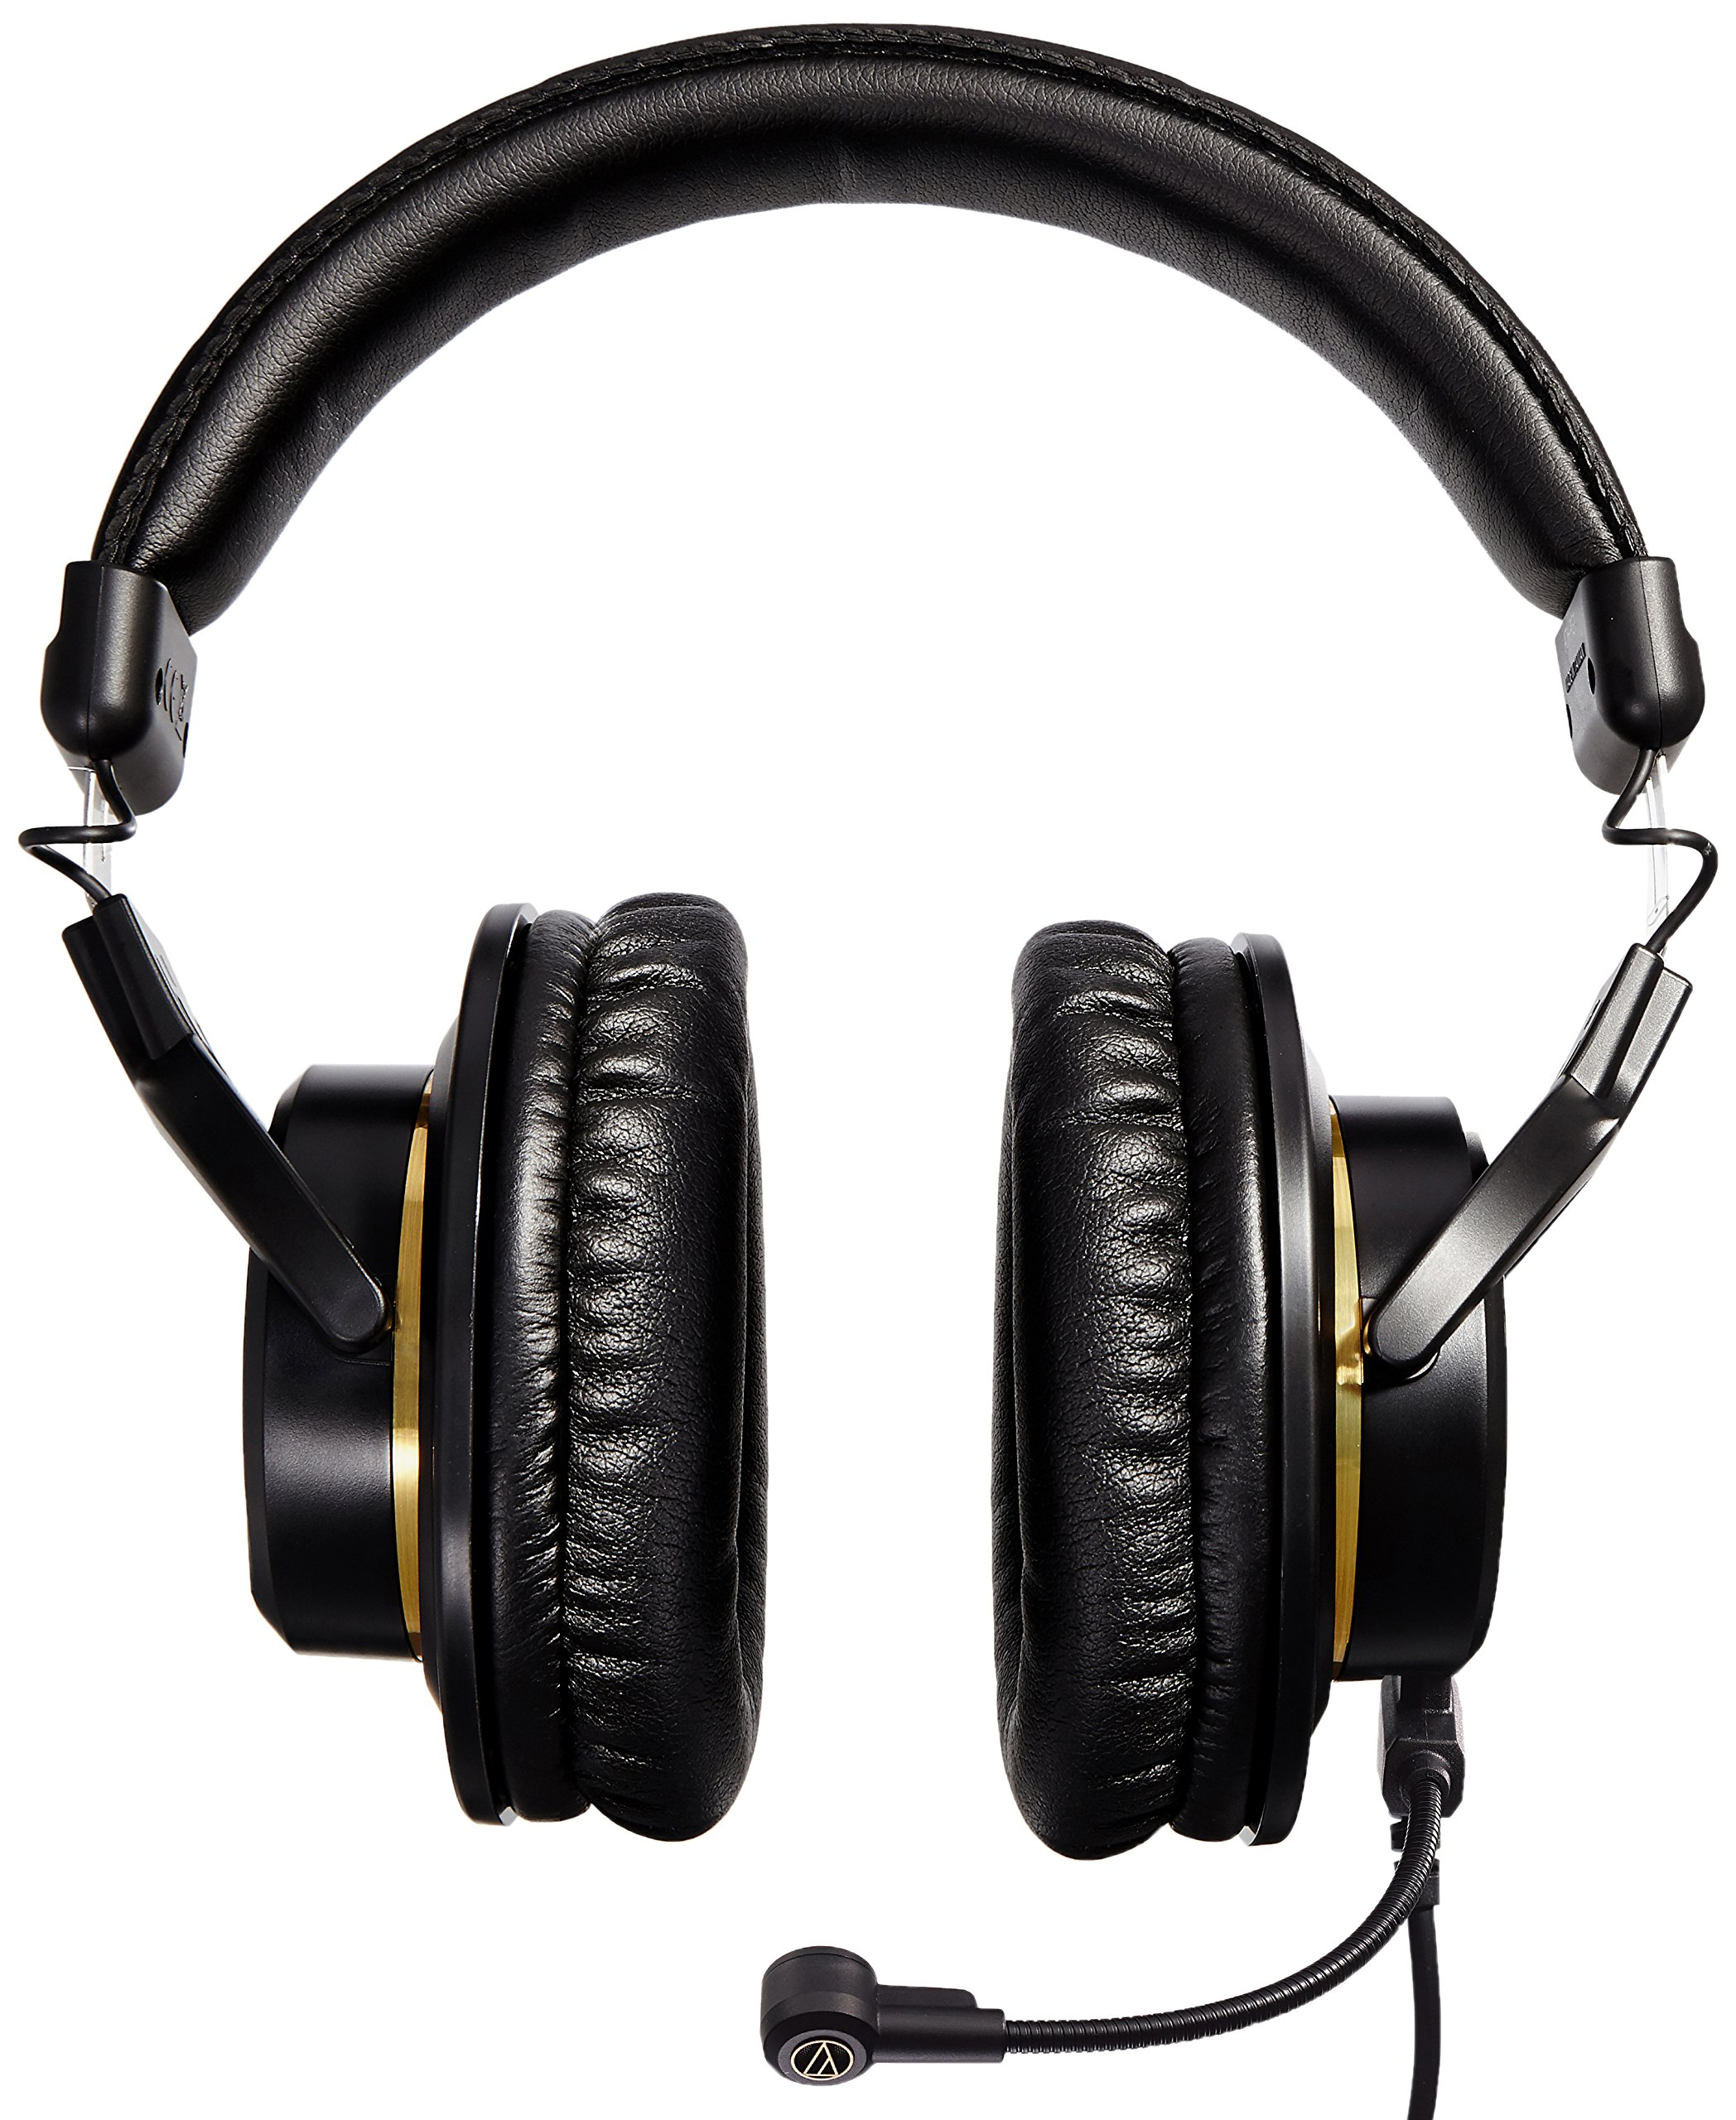 Audio-Technica ATH-PG1 Closed-Back Premium Gaming Headset with 6'' Boom Microphone by Audio-Technica